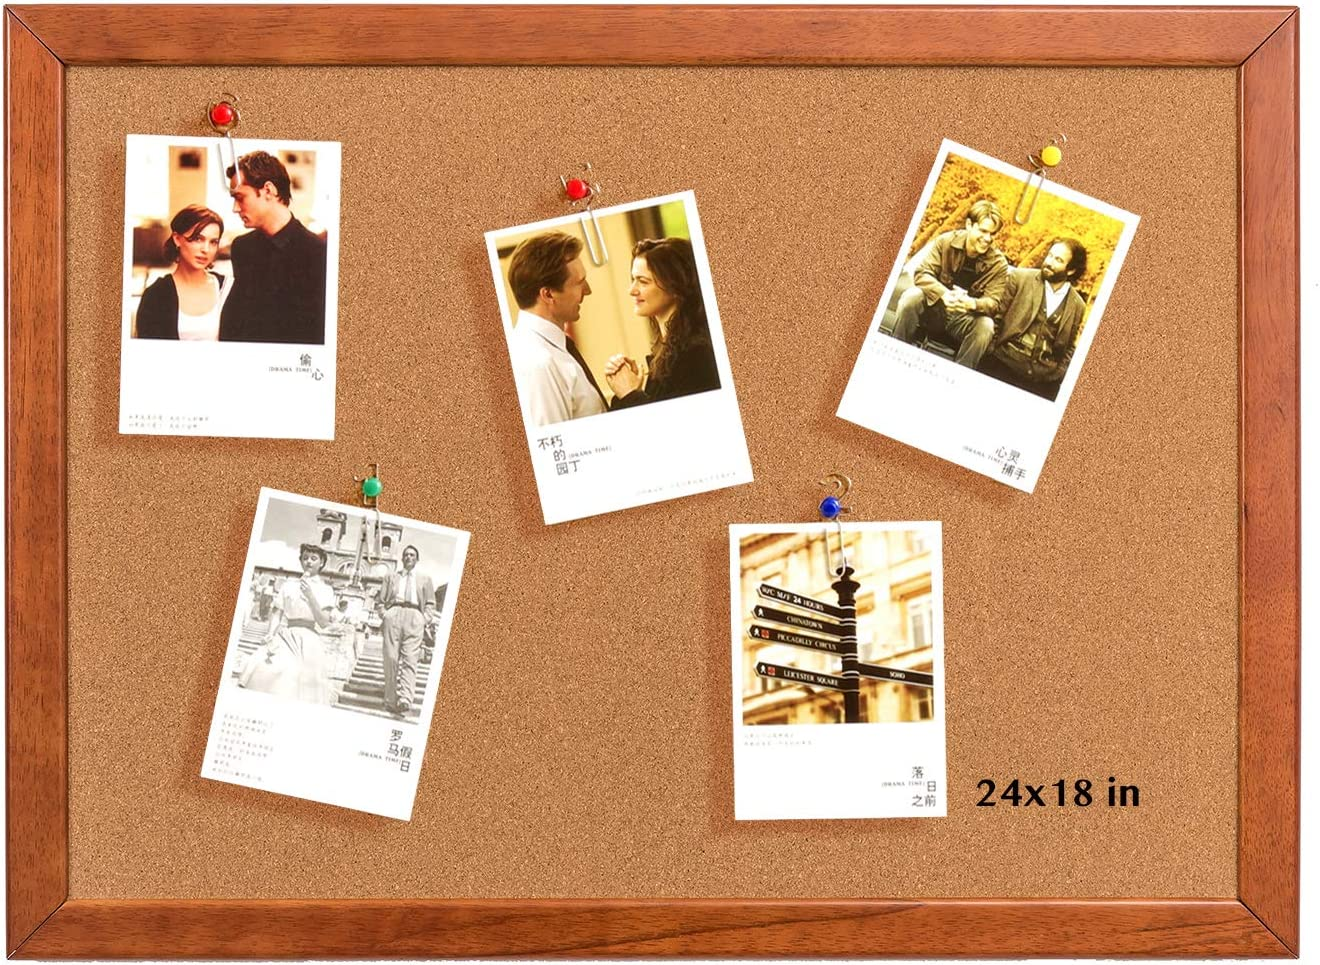 Cork Board 18 x 24 Inch Bulletin Board, Notice Board 100% Wood Frame Brazil Imported, Mounting Hardware, Push Pins Included